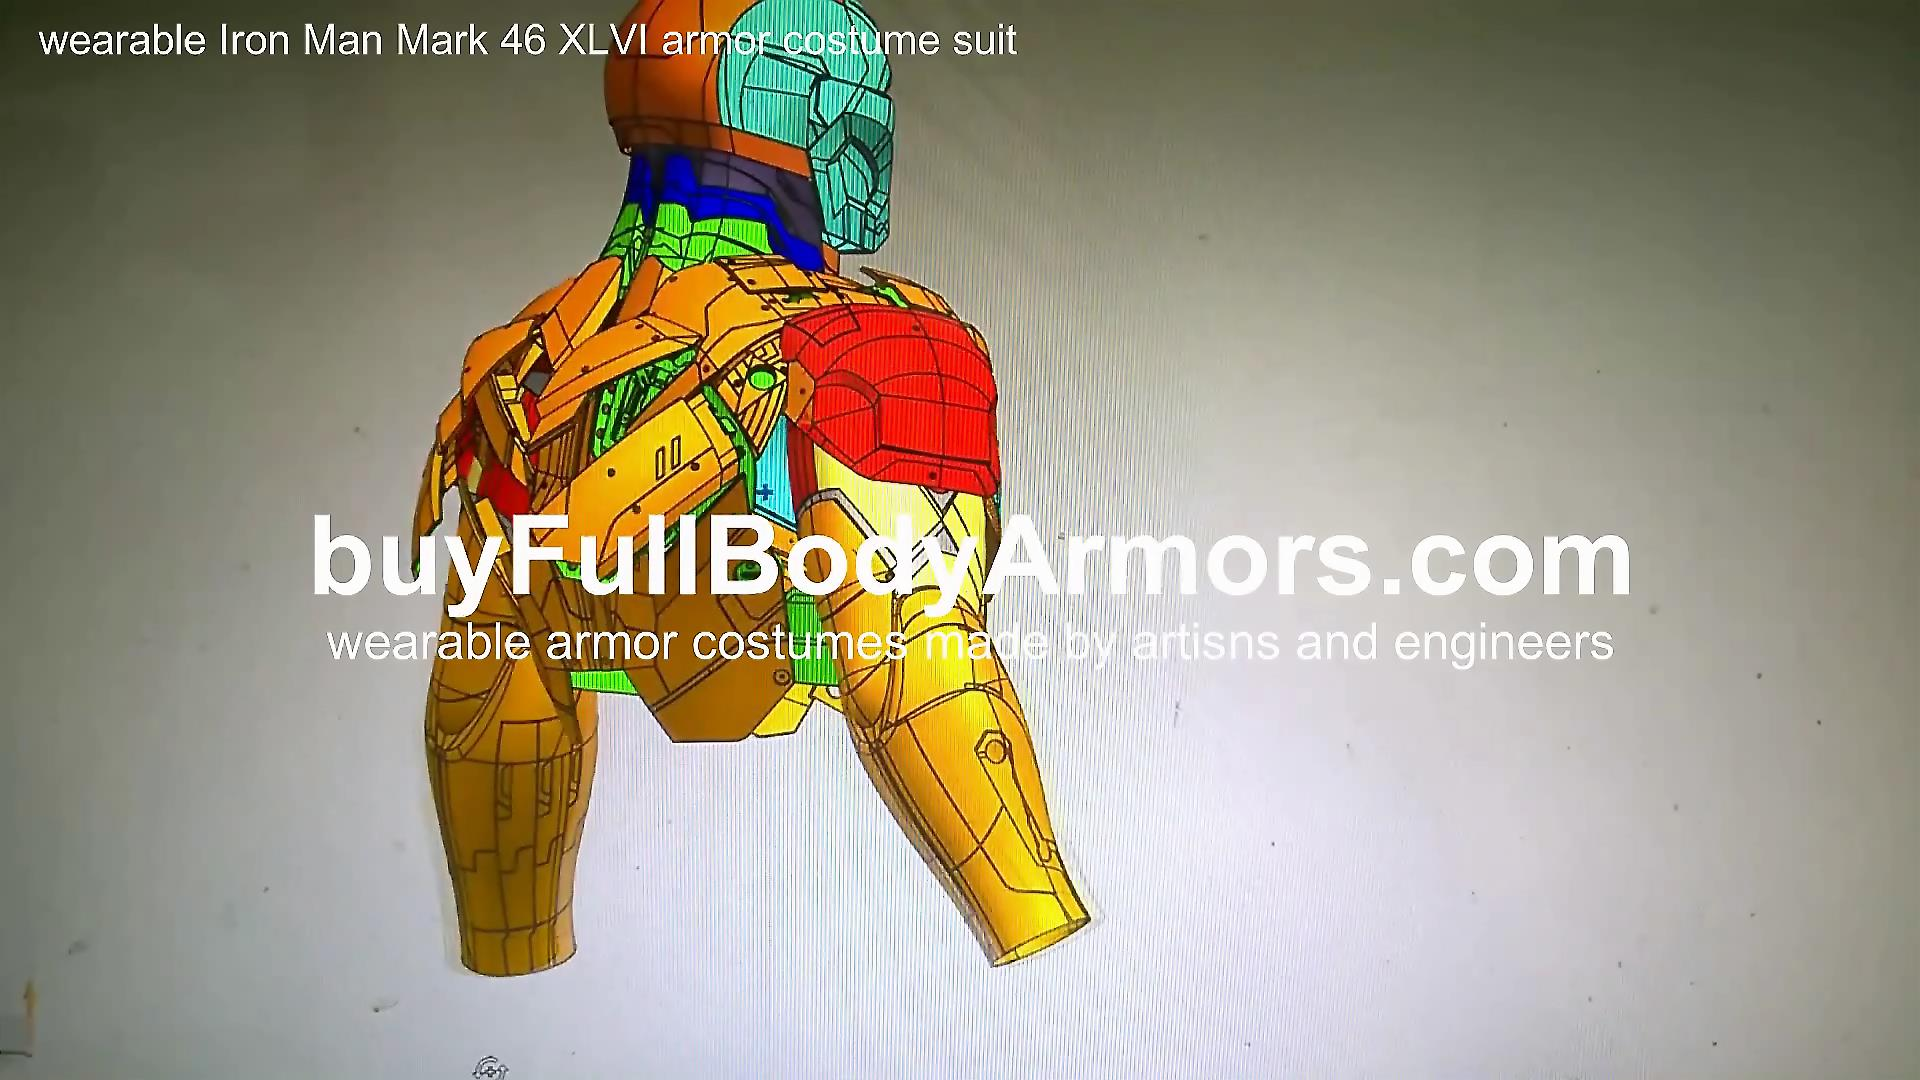 The Ultra-Realistic Movie-Accurate Wearable Iron Man Mark 46 (XLVI) Armor Costume Suit 3D Modelling 1